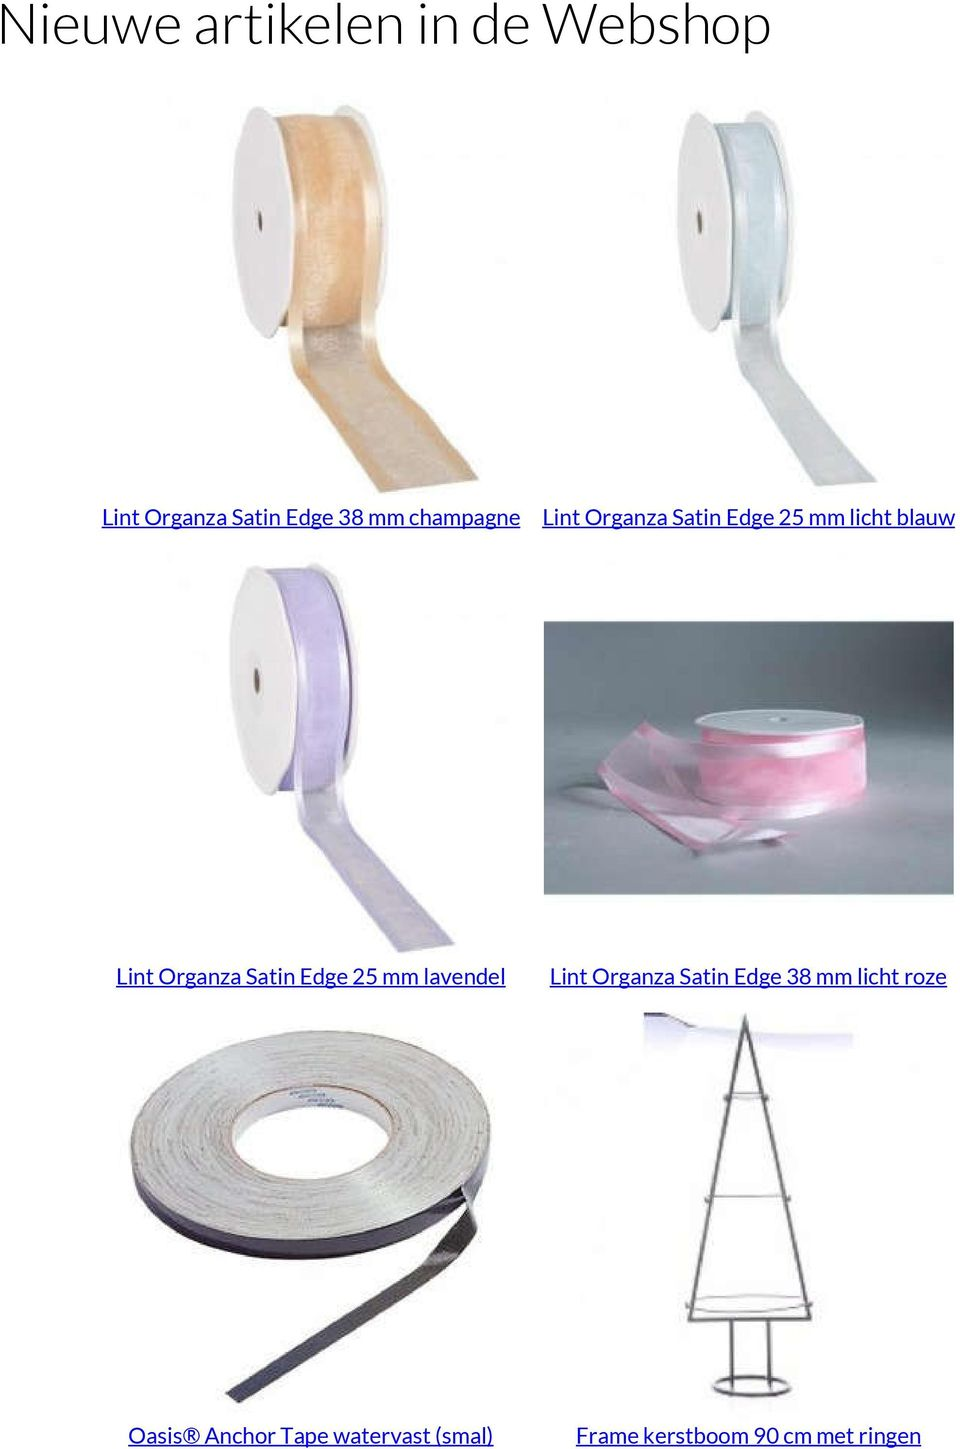 Satin Edge 25 mm lavendel Lint Organza Satin Edge 38 mm licht